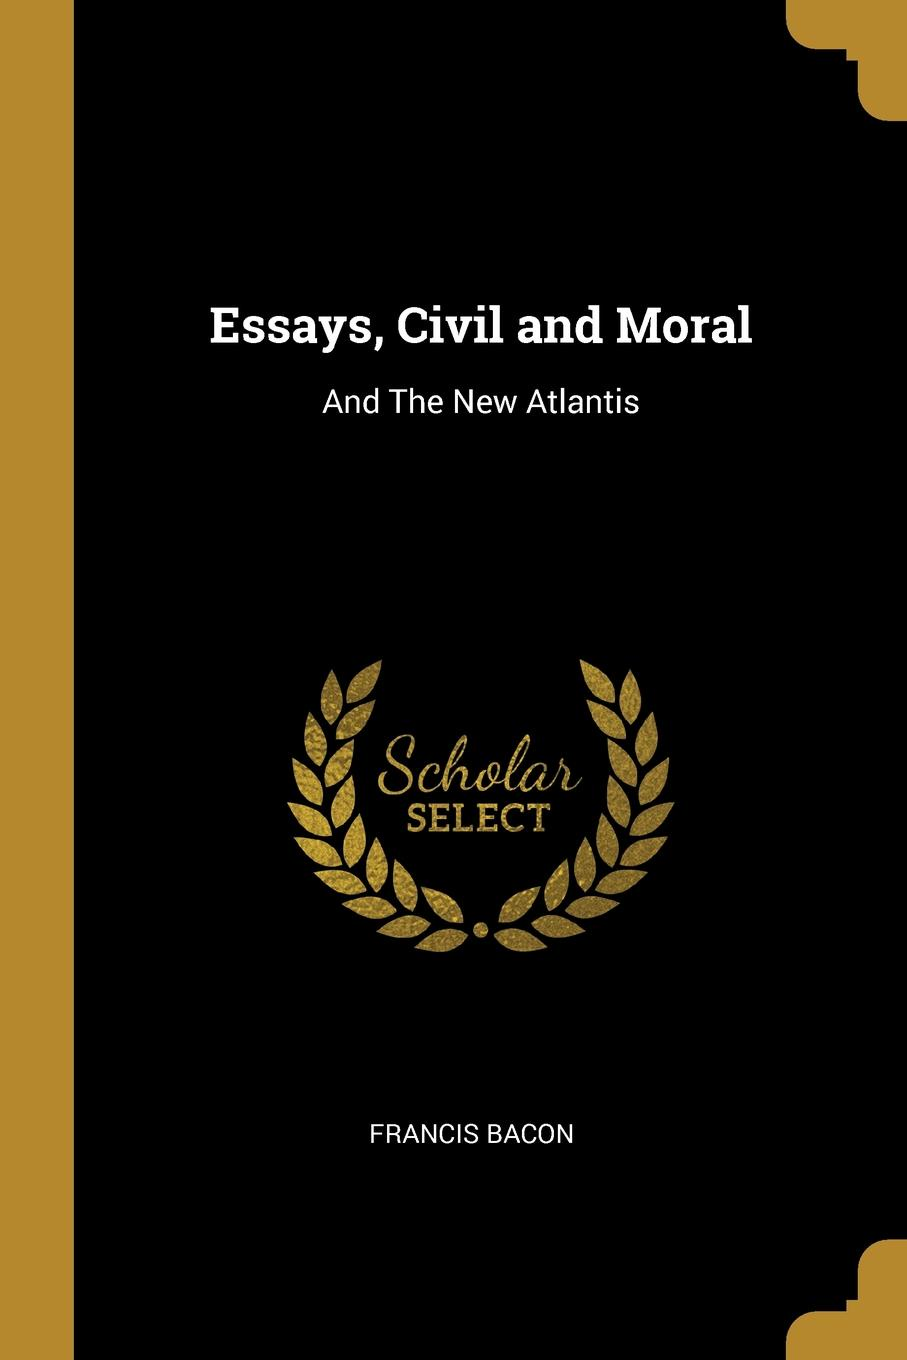 Francis Bacon. Essays, Civil and Moral. And The New Atlantis